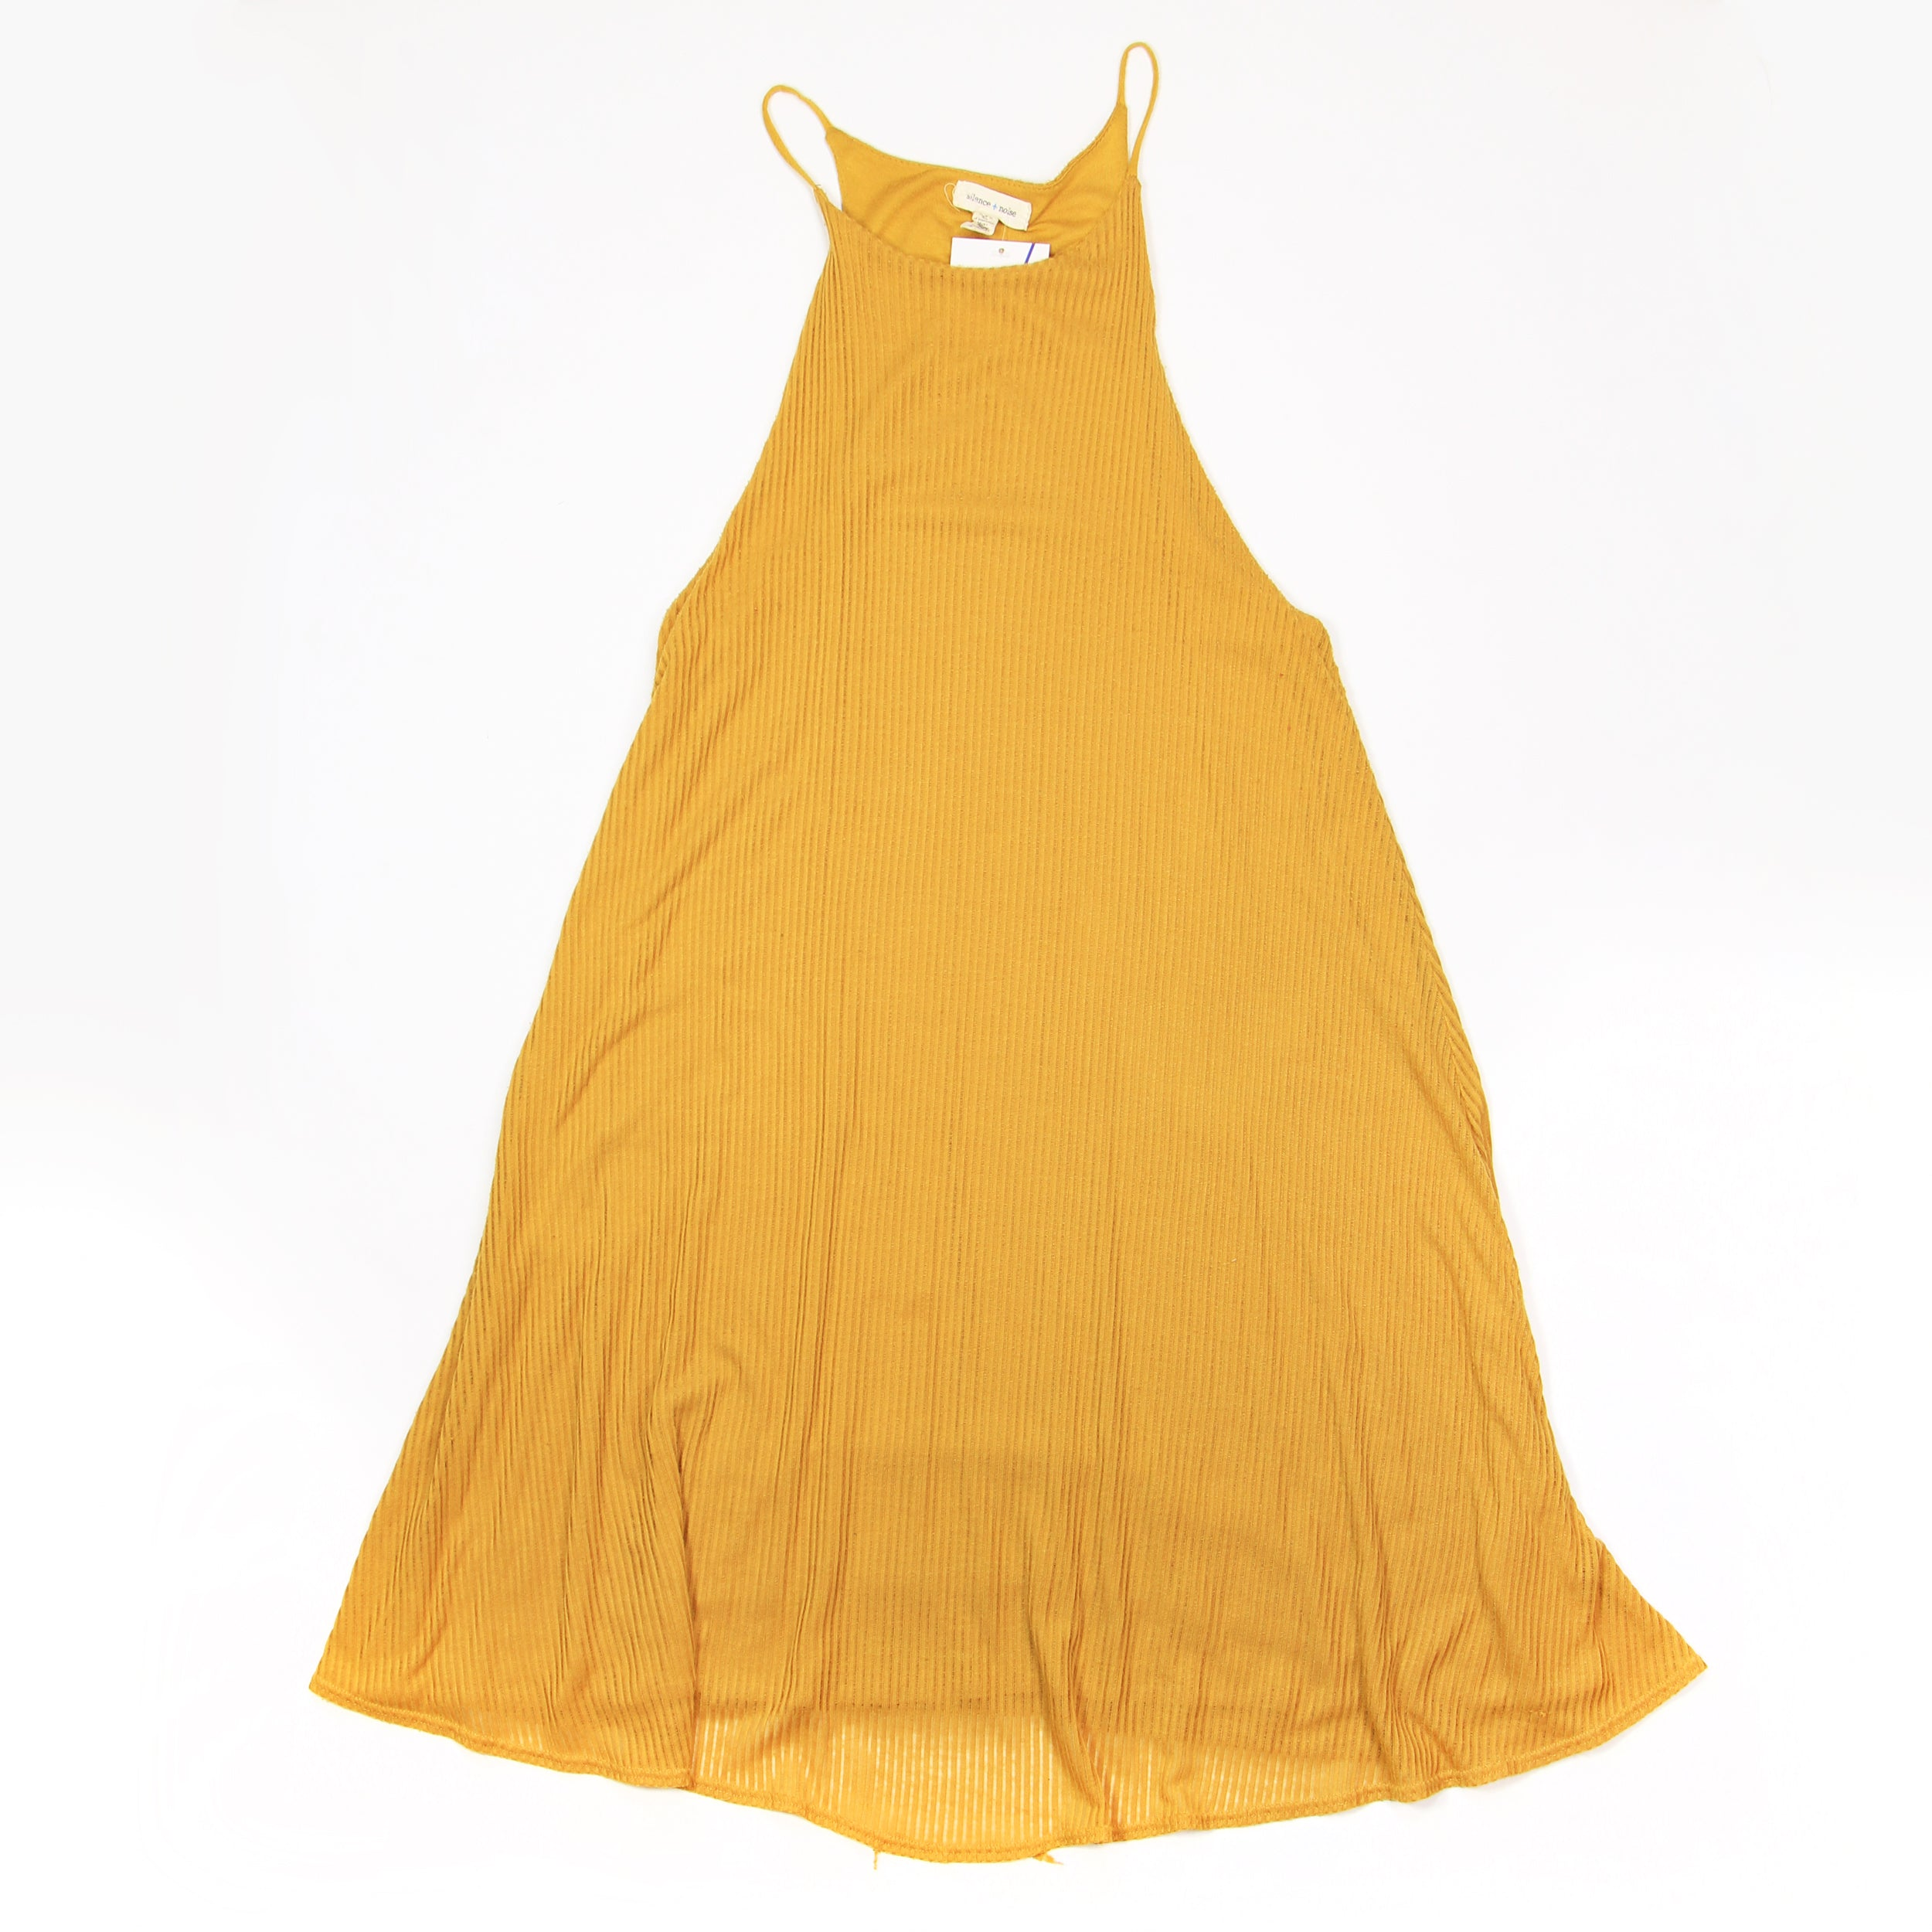 Silence and Noise - Yellow Dress - M